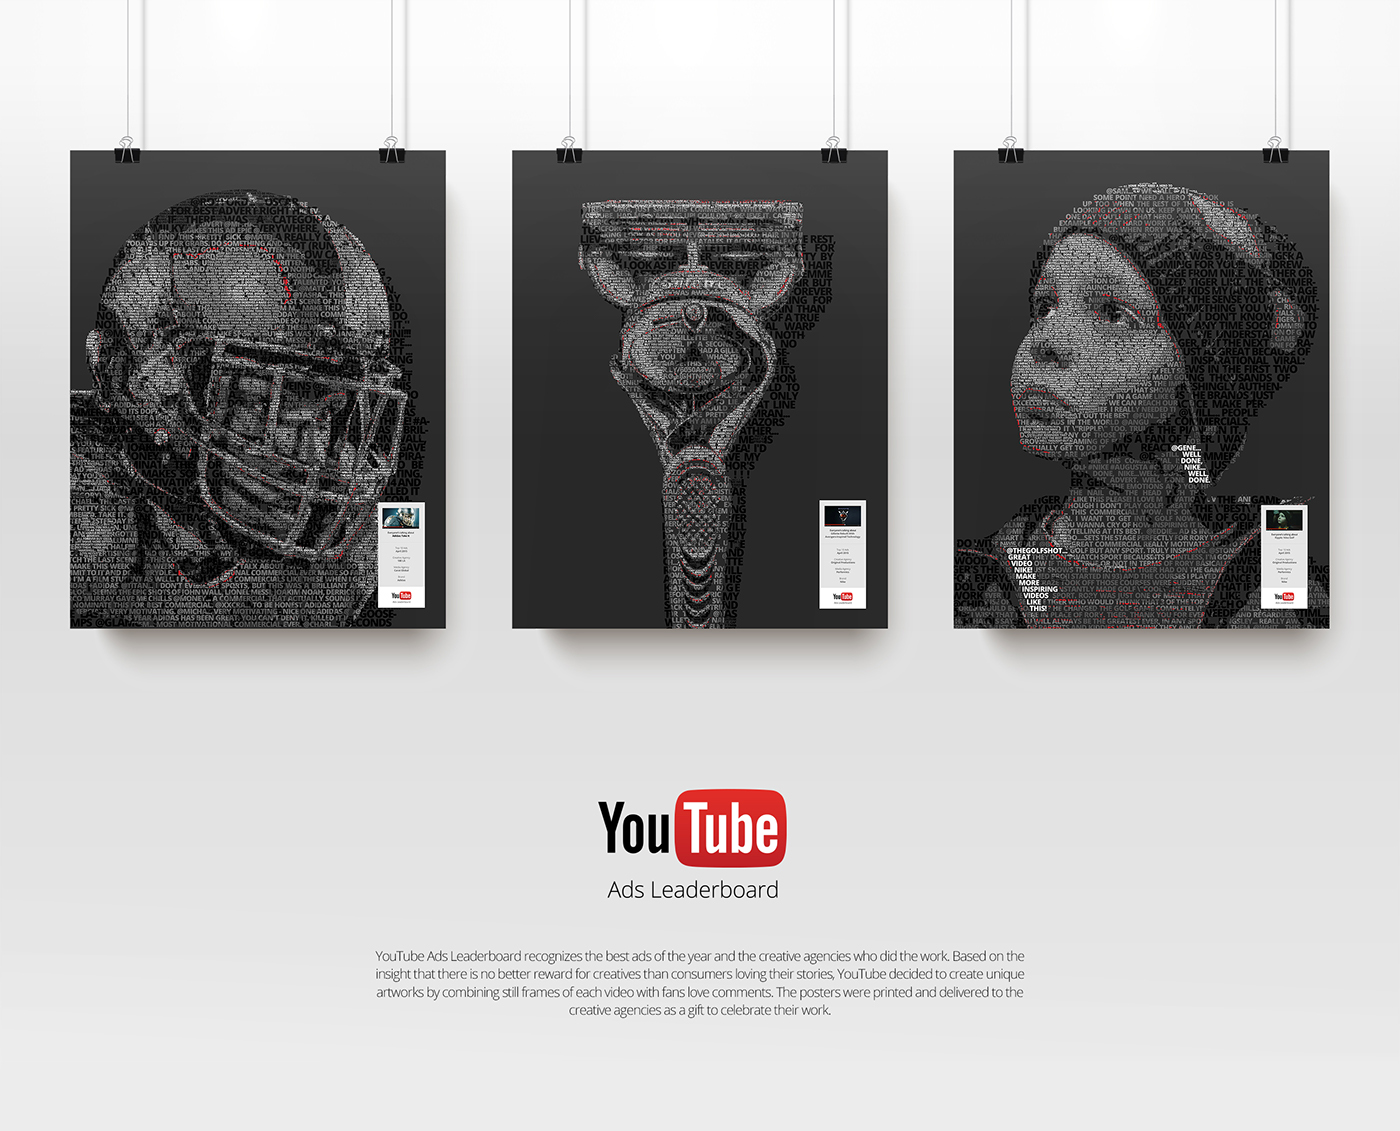 2ea02aef084 YouTube Ads Leaderboard  Top 10 Awards Poster on Behance